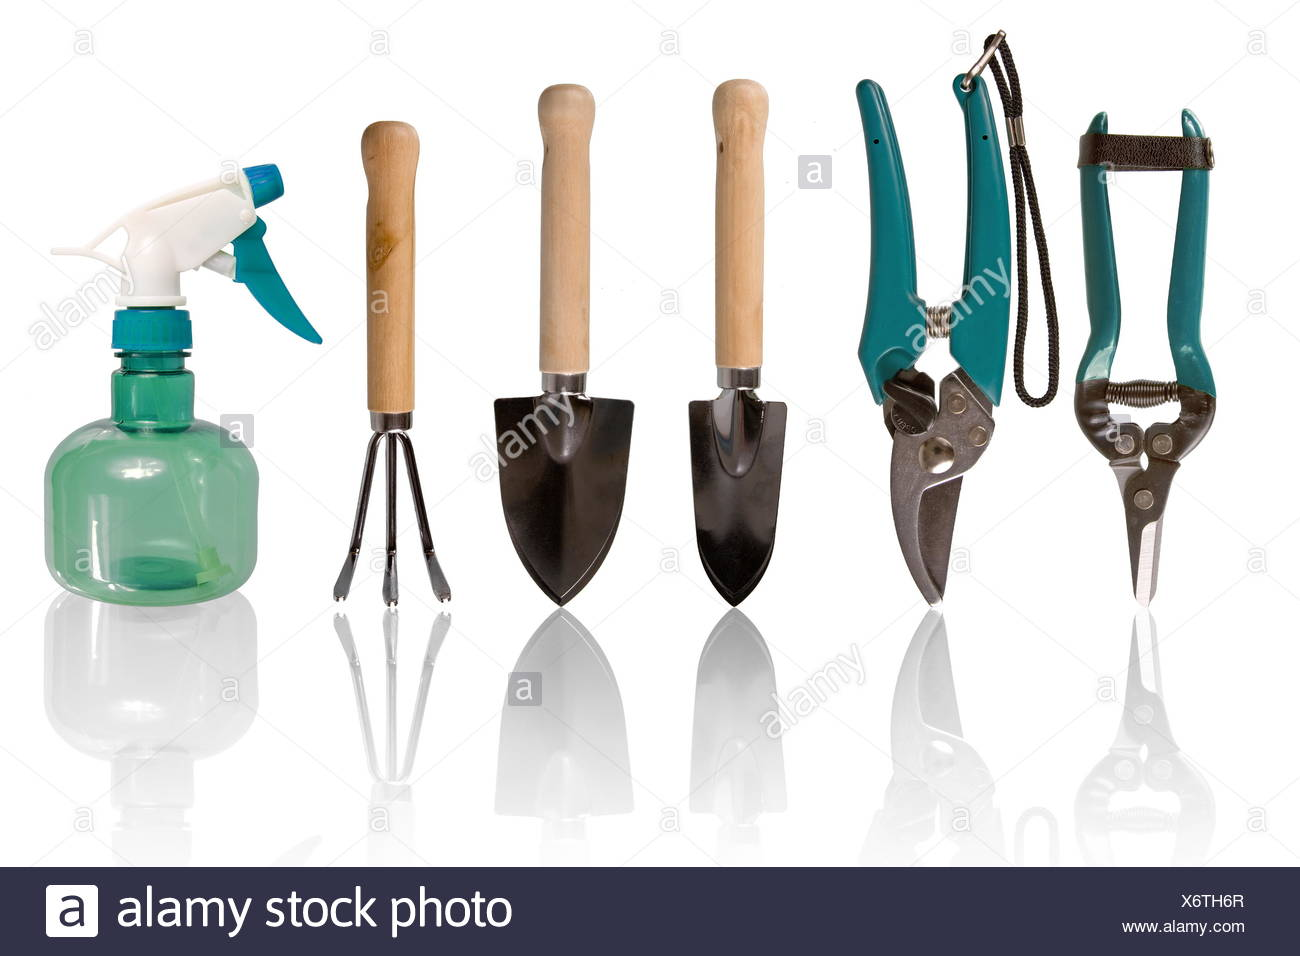 Small Gardening Tools   Stock Image